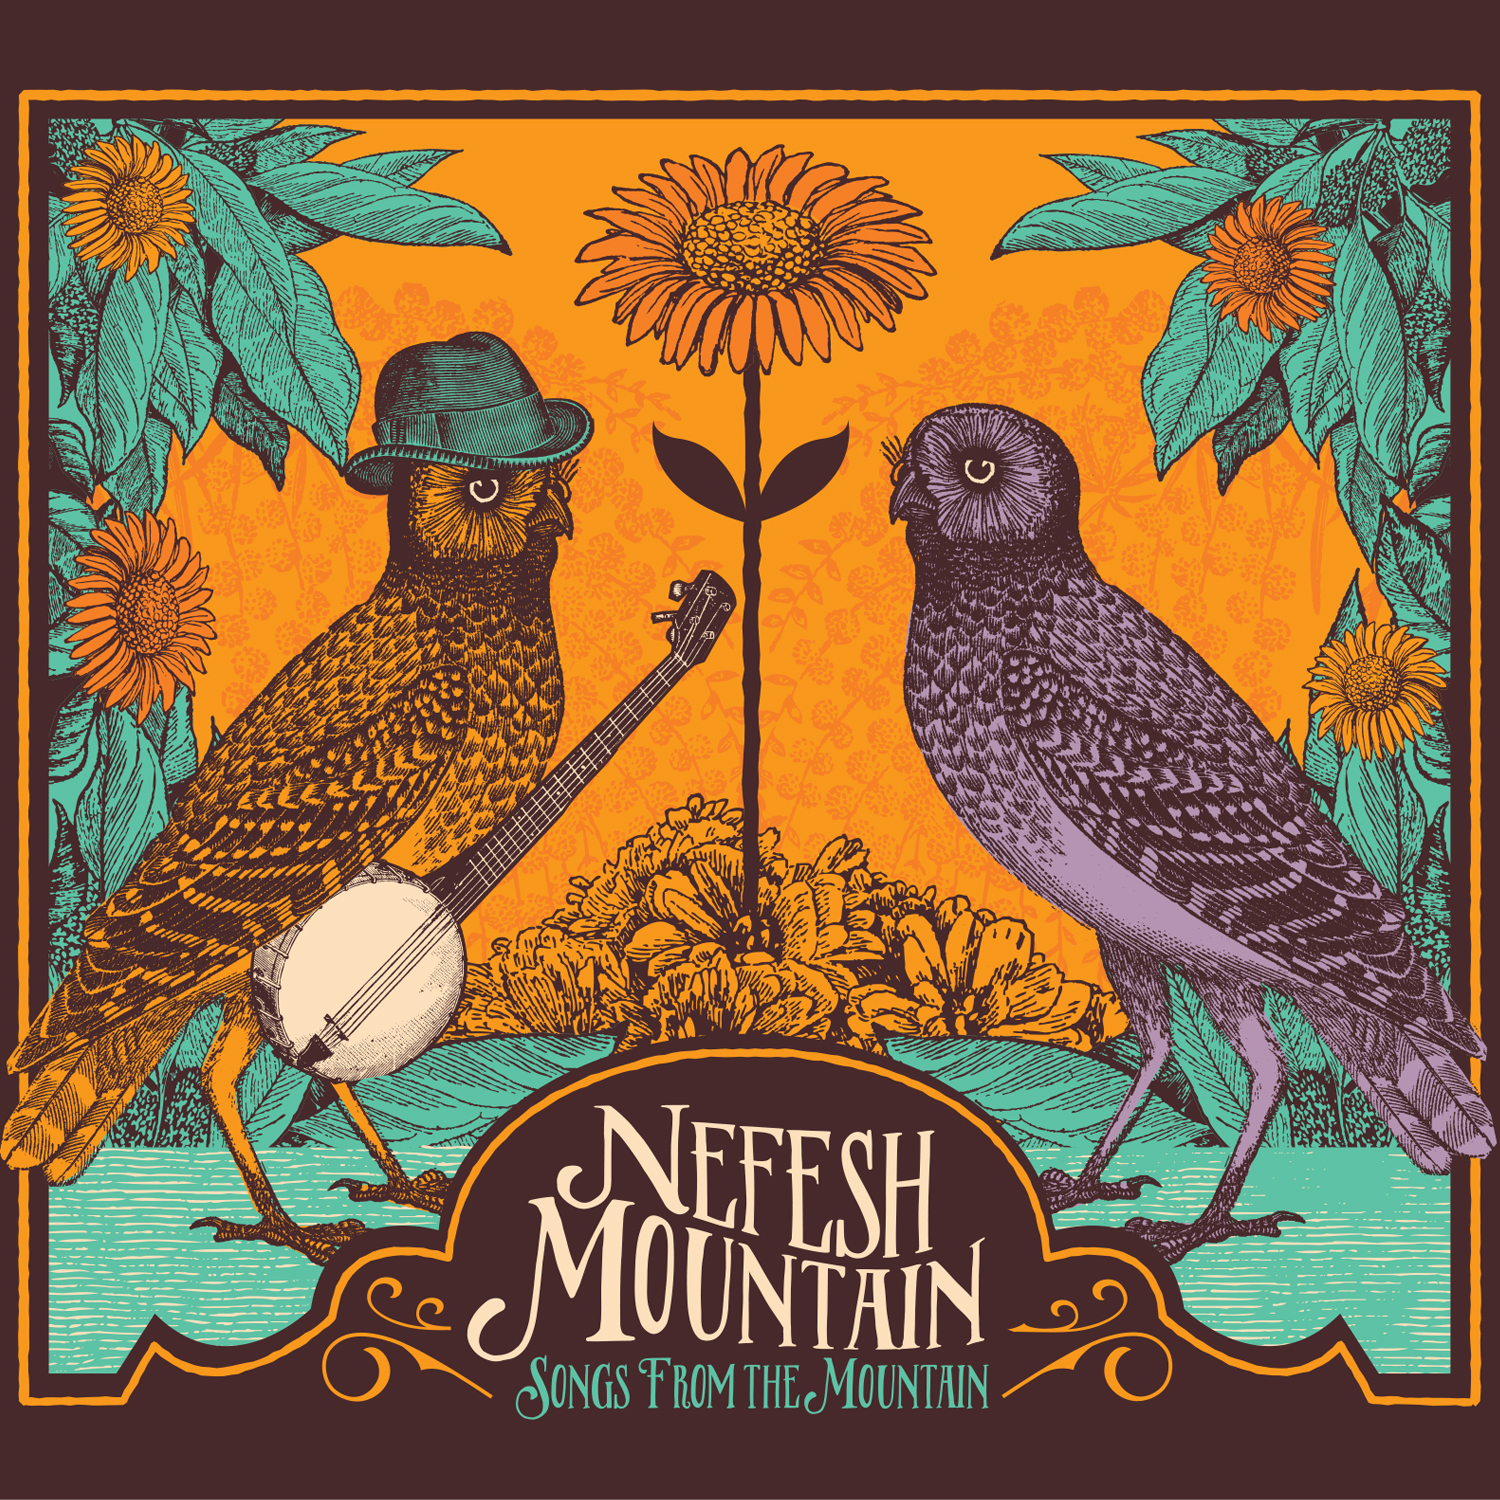 Songs From The Mountain Cover.jpg